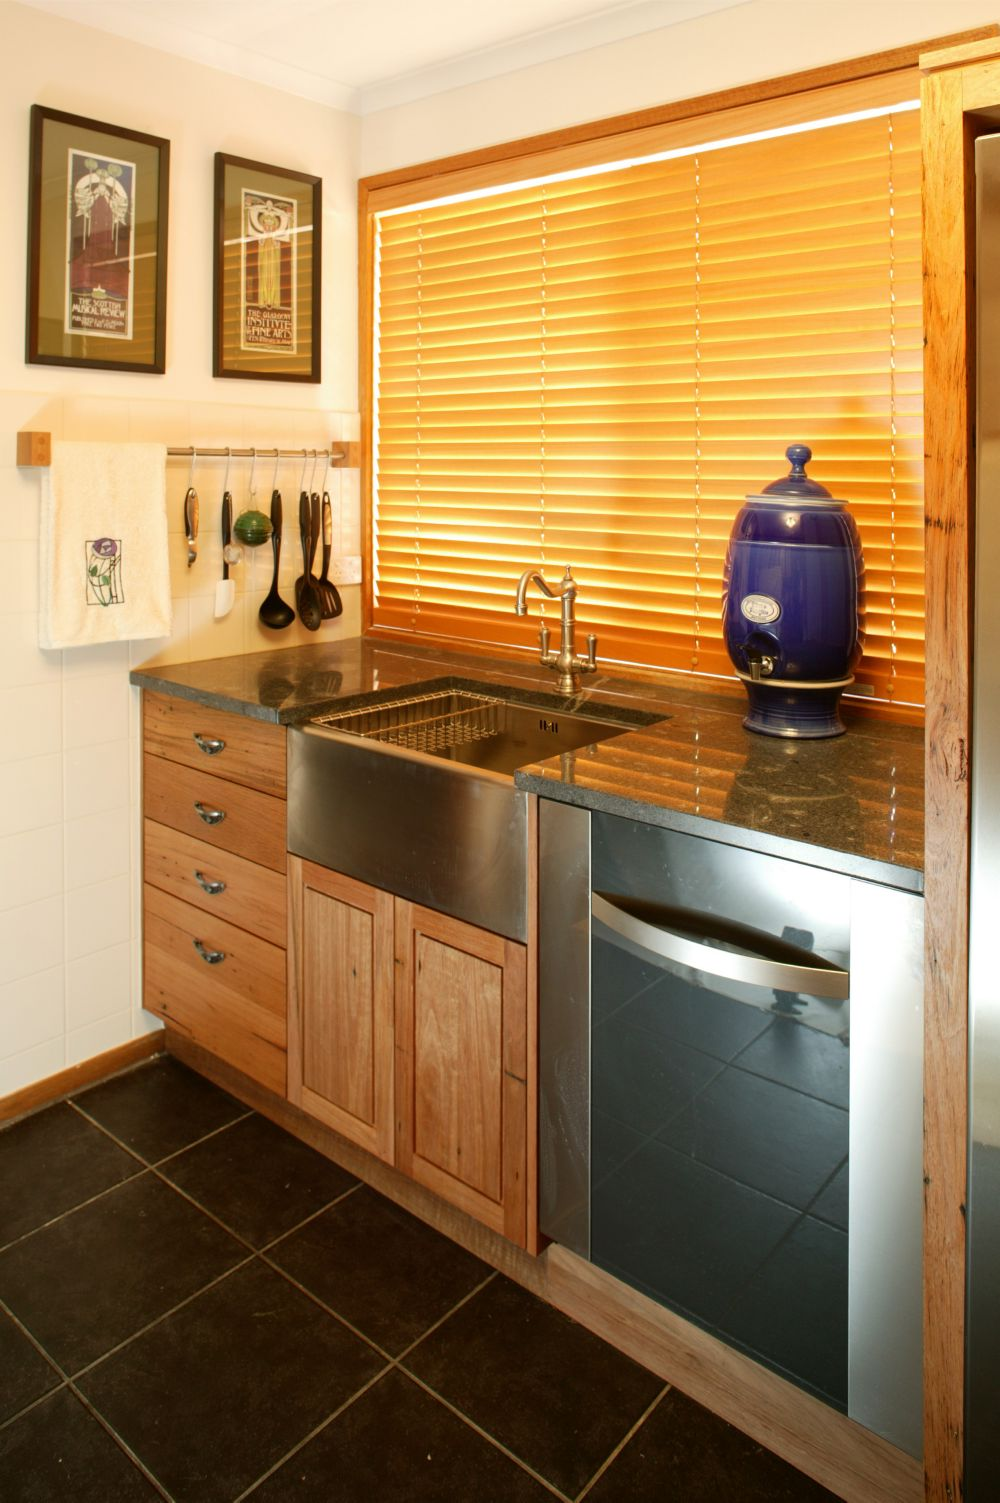 Select Custom Joinery Rennie Mackintosh Plywood And